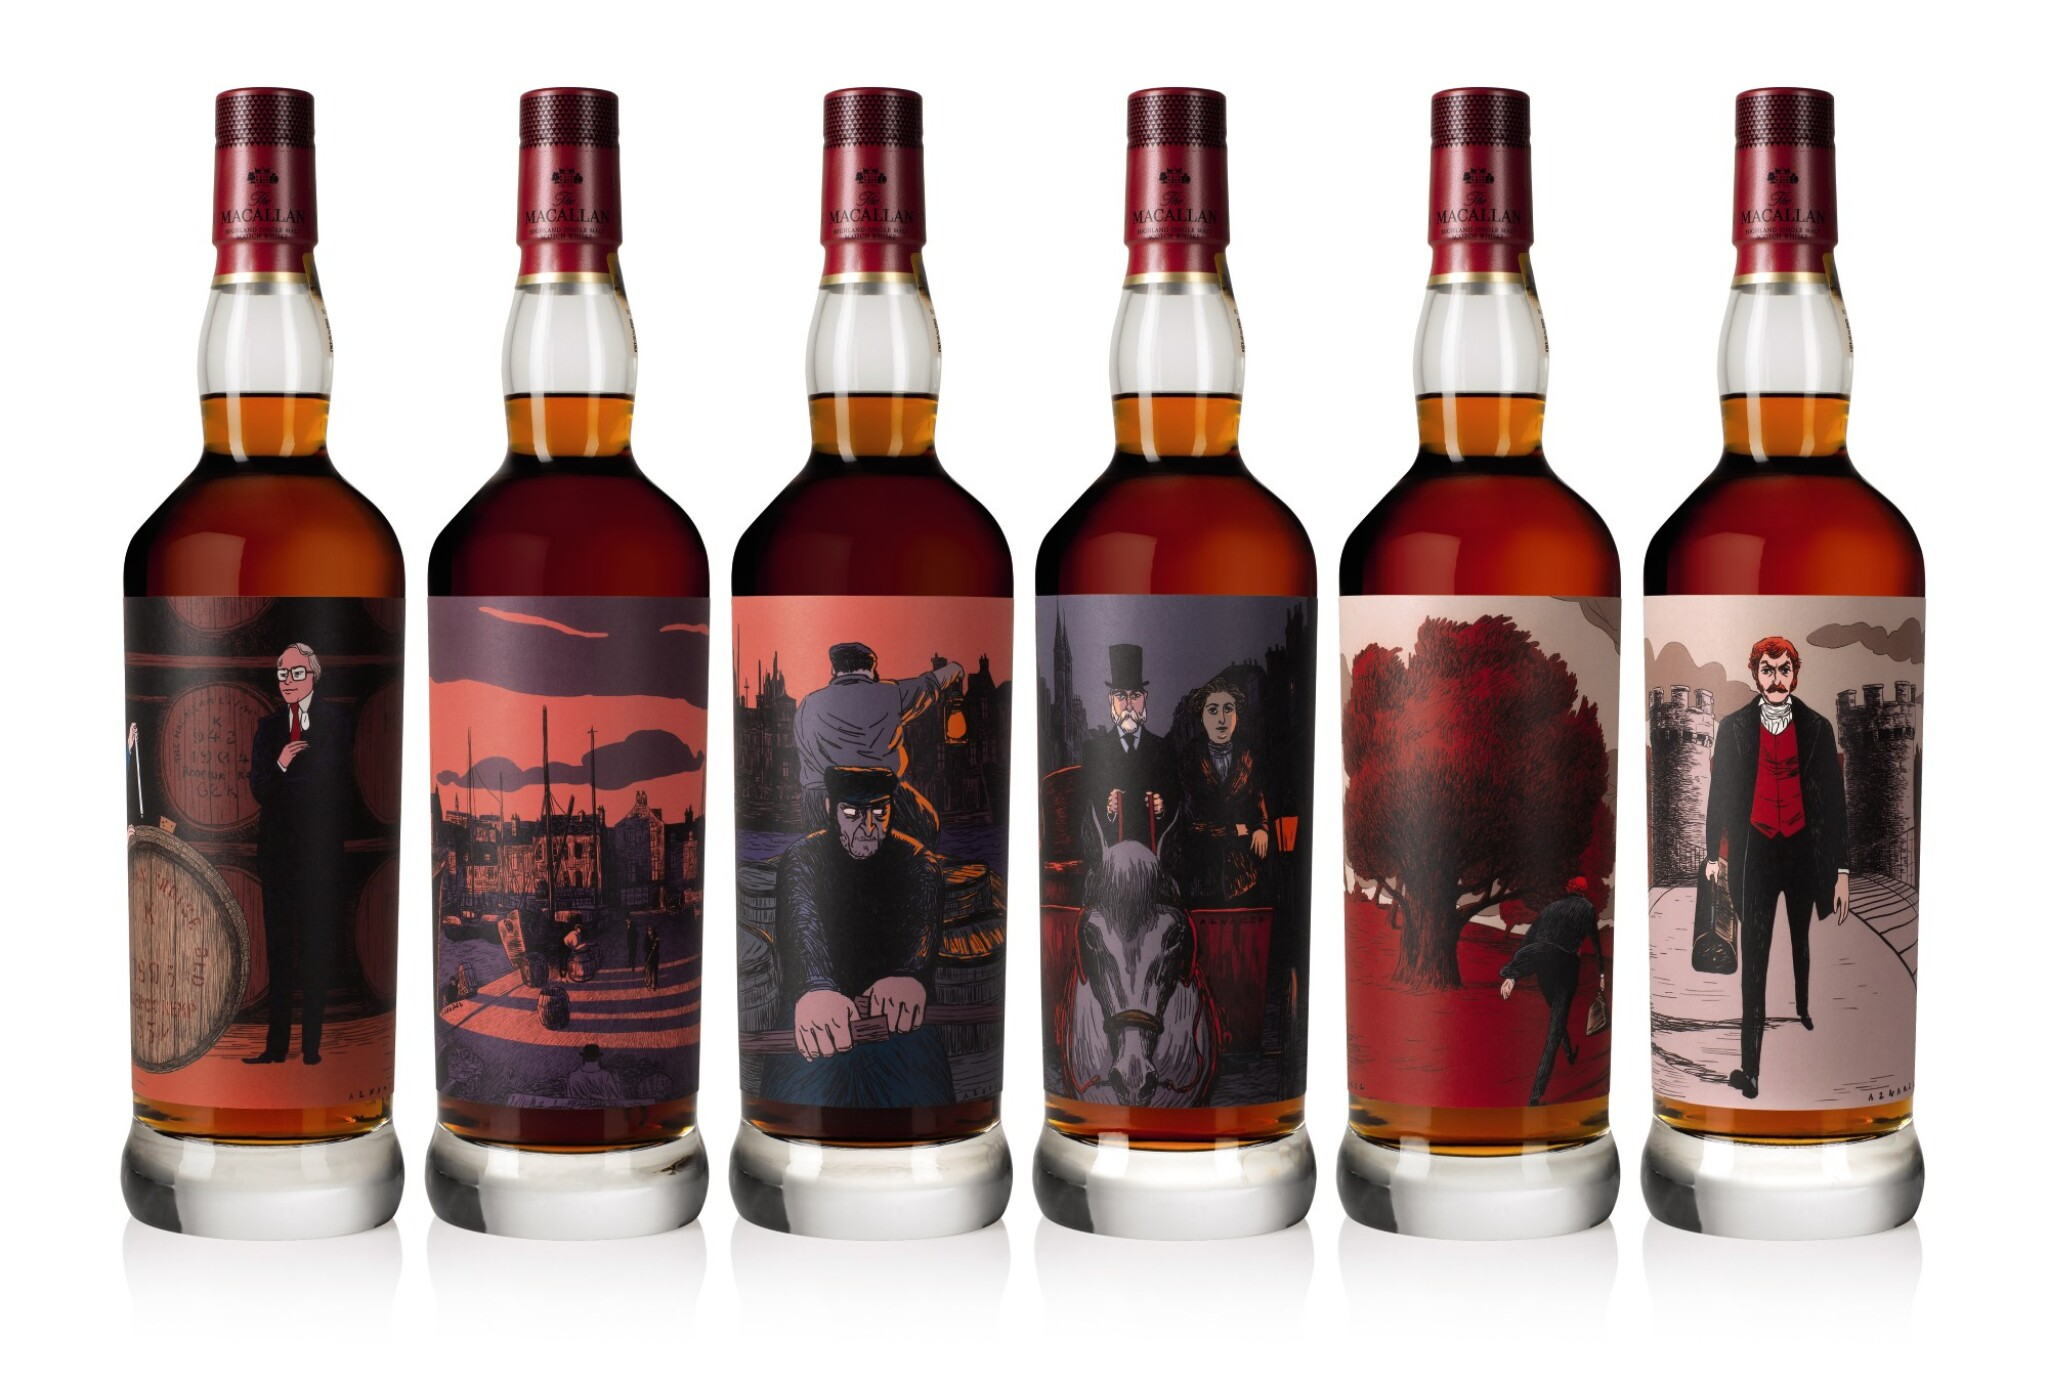 View 1 of Lot 1. The Macallan Red Collection with Exclusive Labels Illustrated by Javi Aznarez (6 bts 70cl).